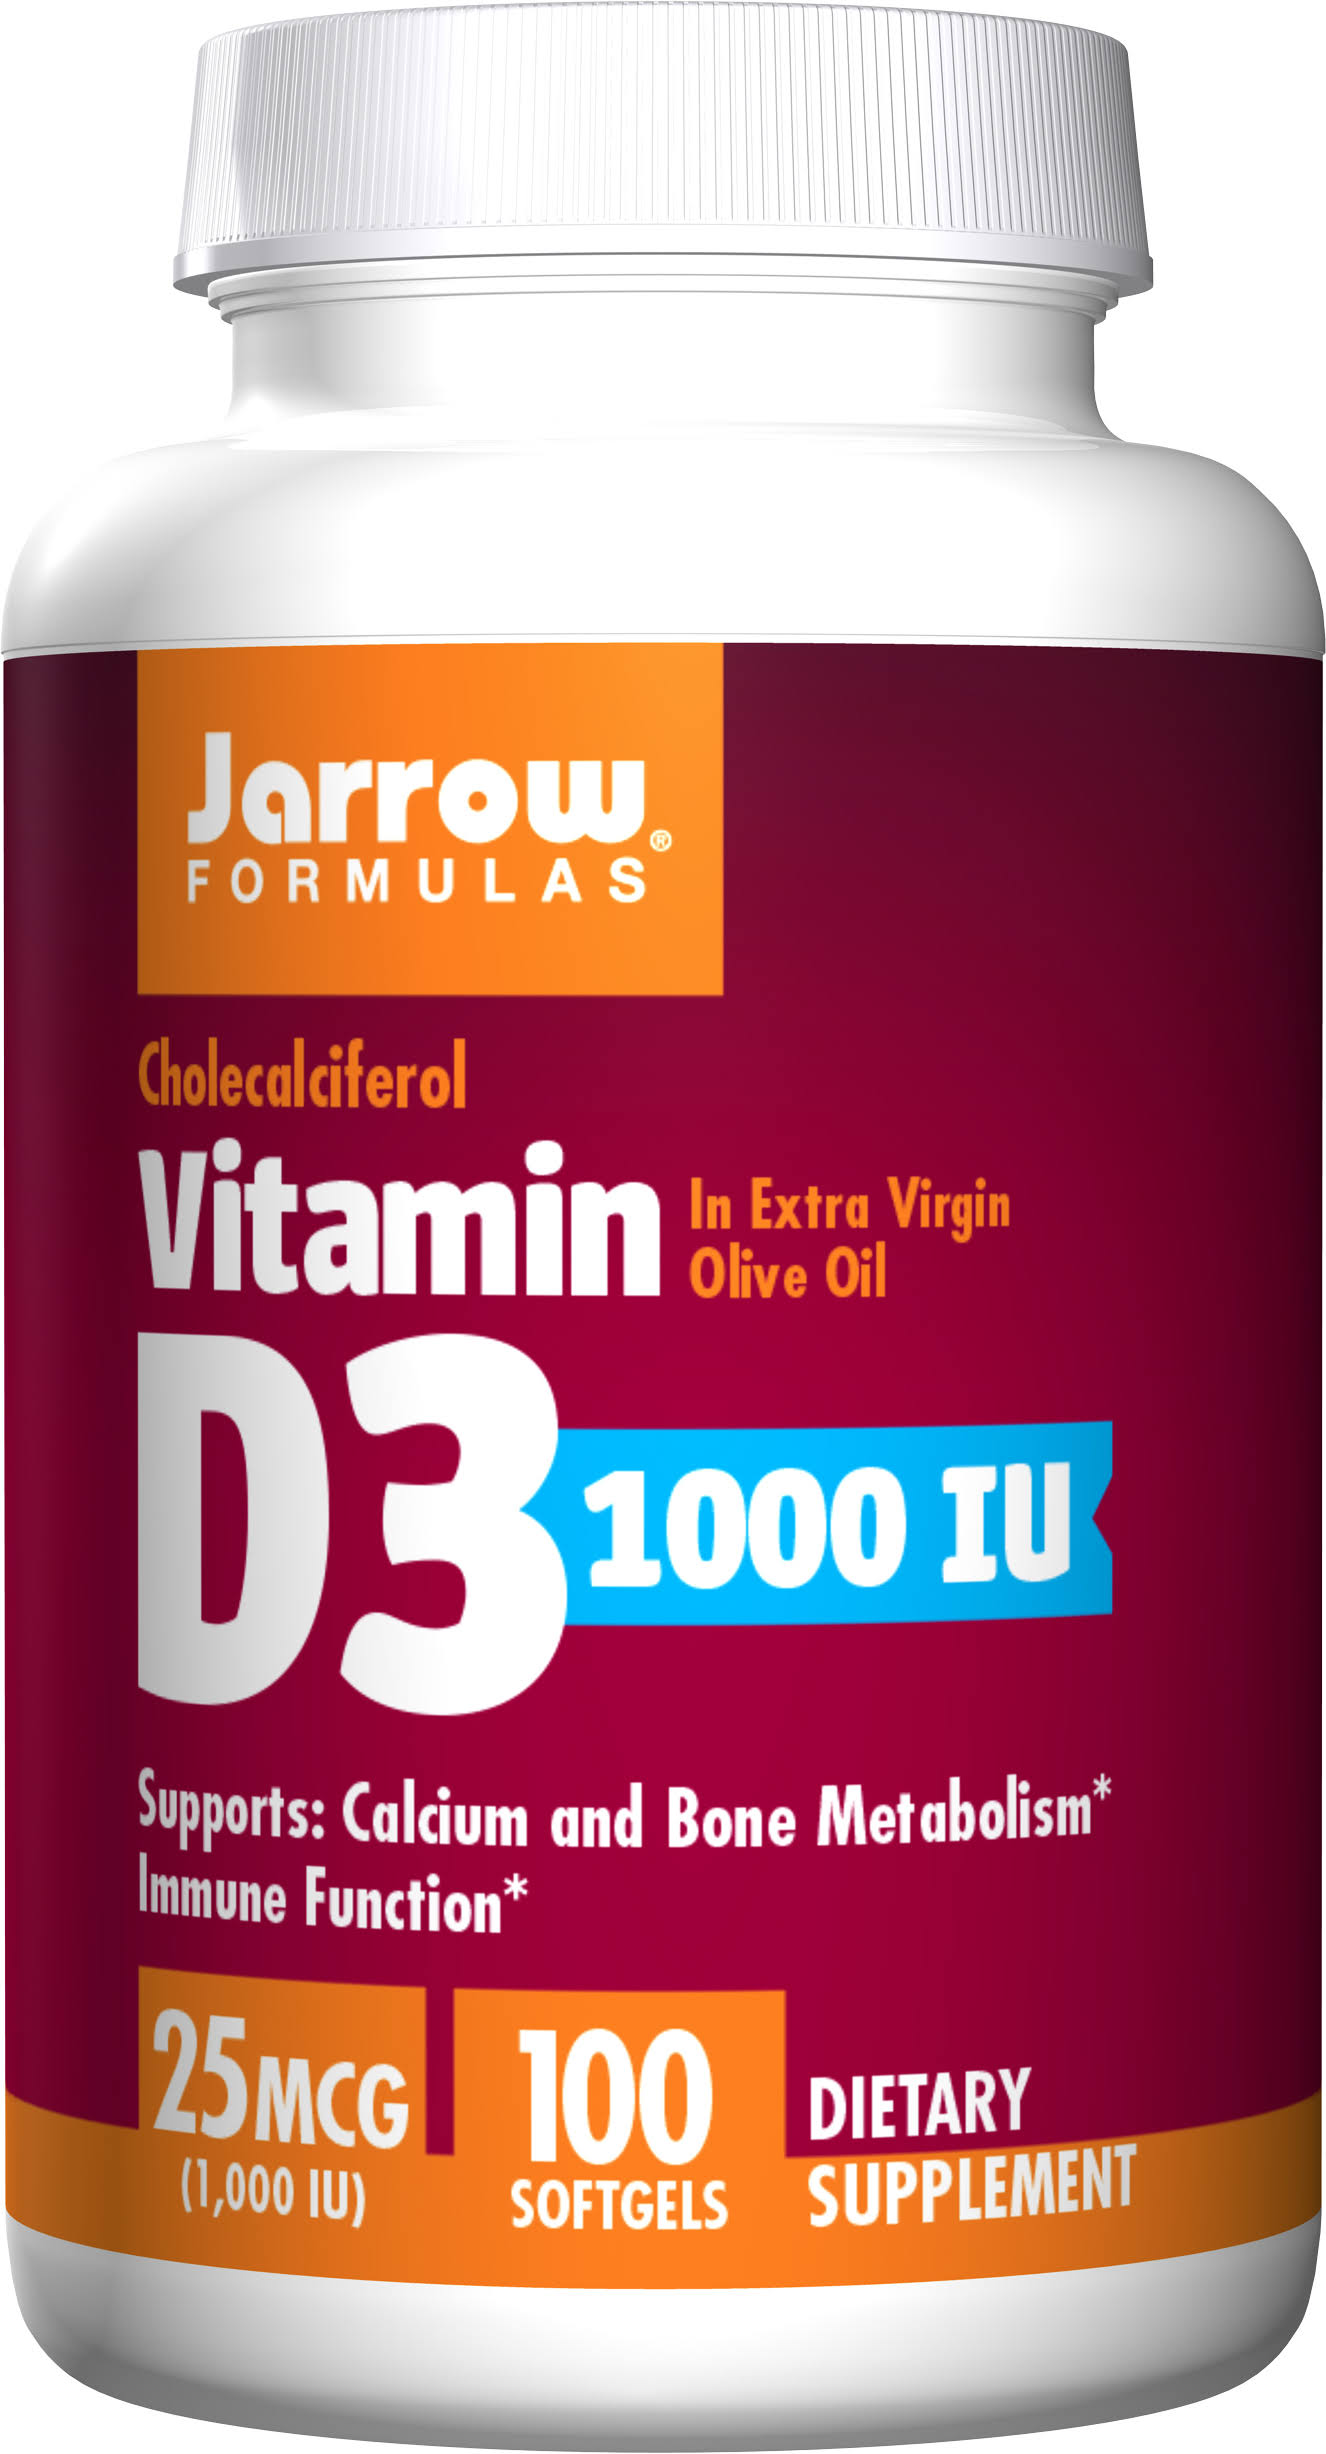 Jarrow Formulas Vitamin D3 - 1000 IU, 100 Softgels